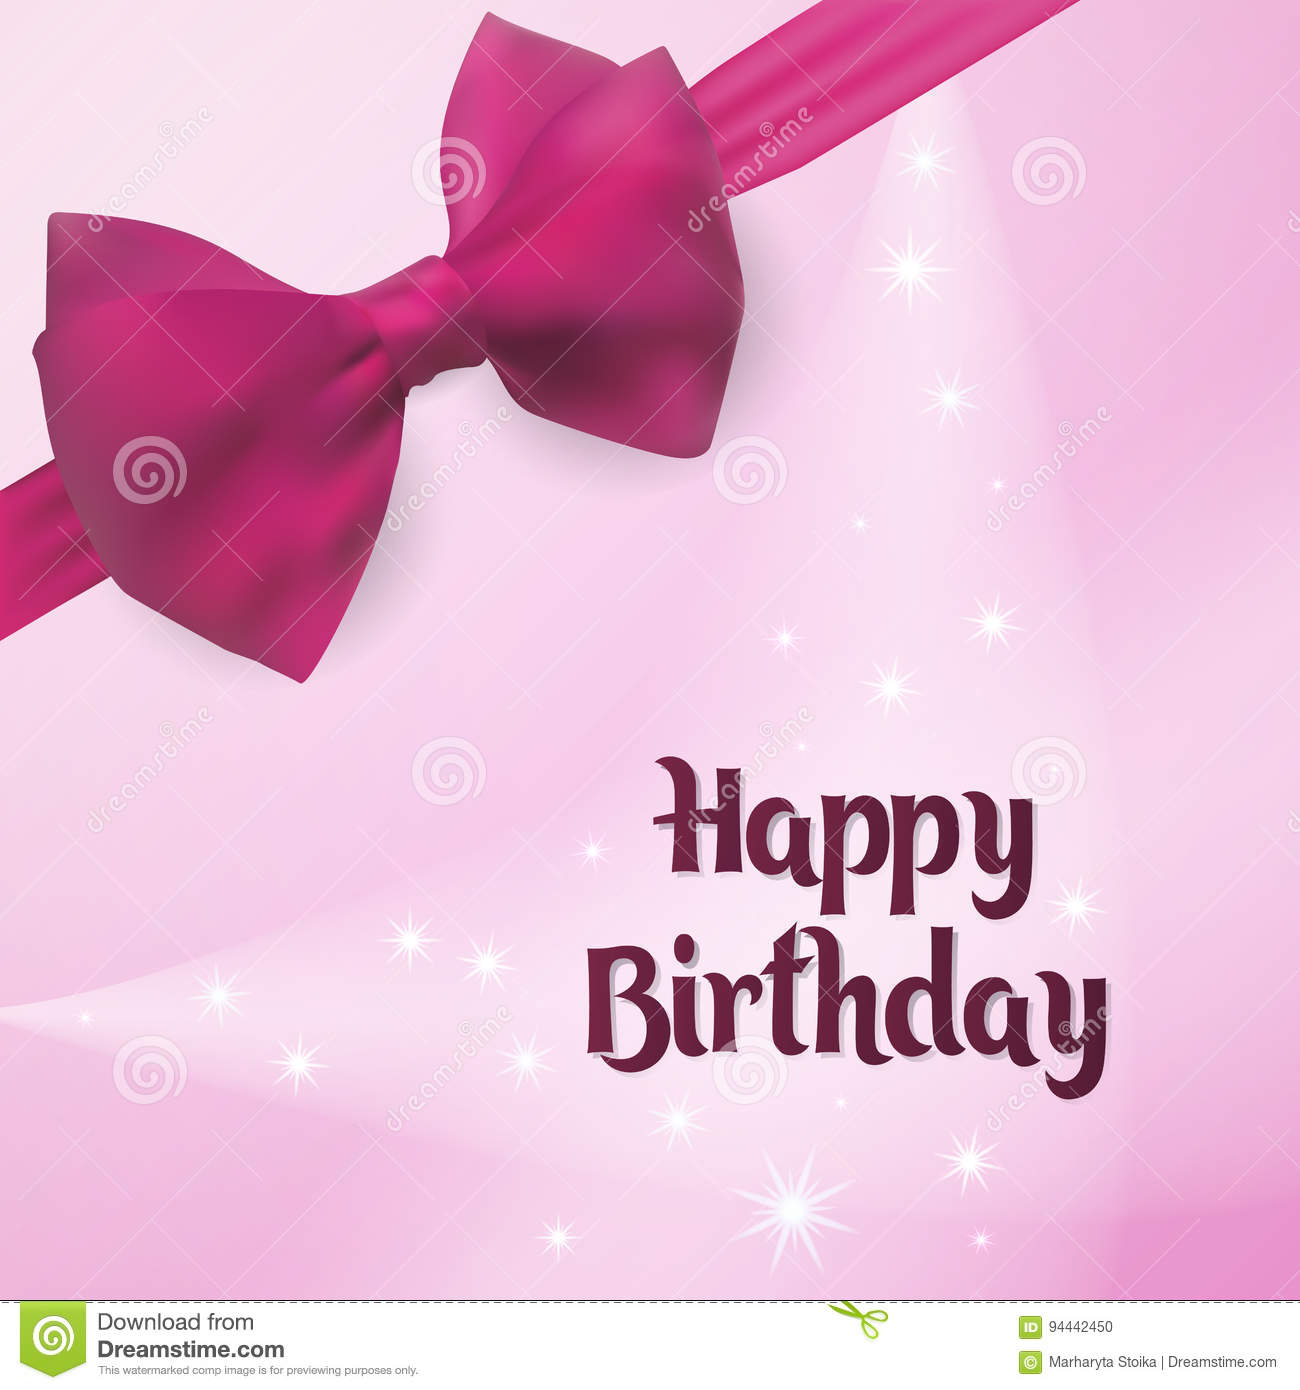 Happy birthday birth greeting card backlight on the background download happy birthday birth greeting card backlight on the background decorated with pink bow m4hsunfo